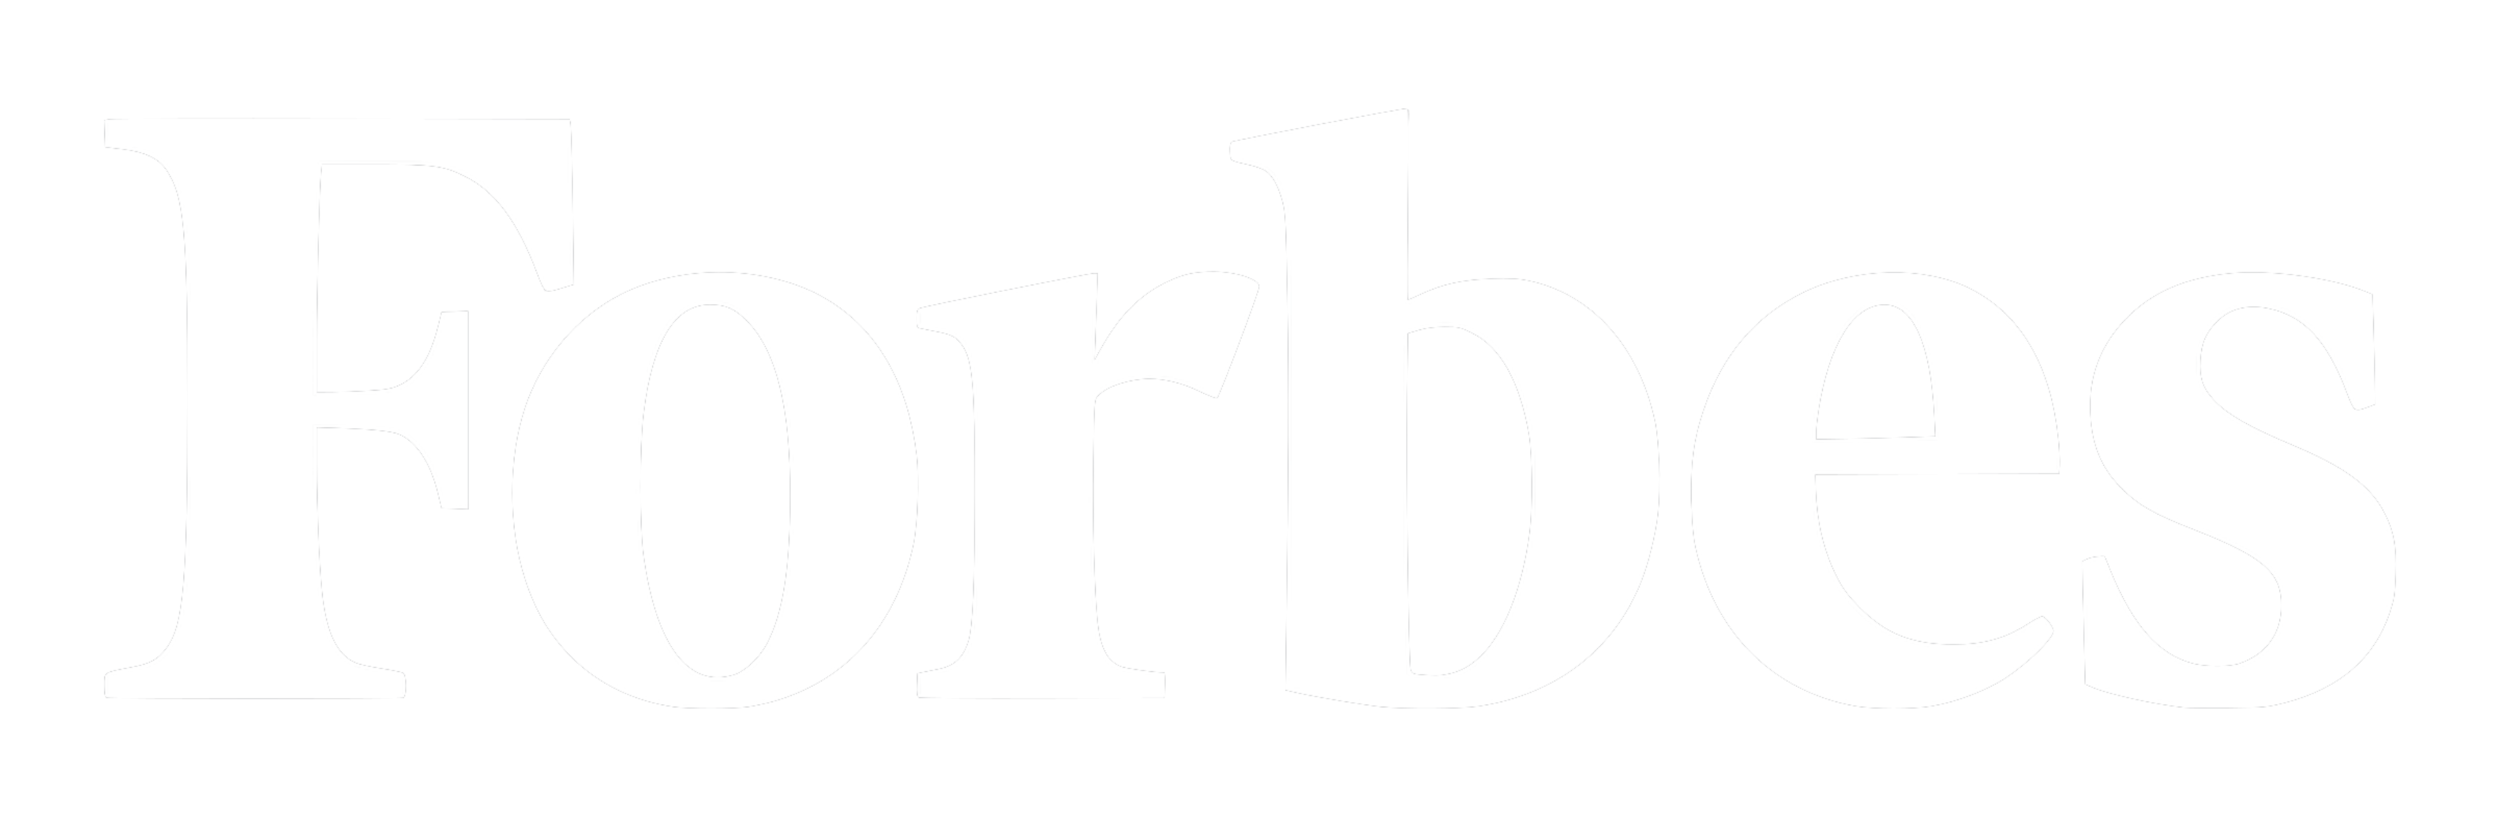 Forbes faded logo.png